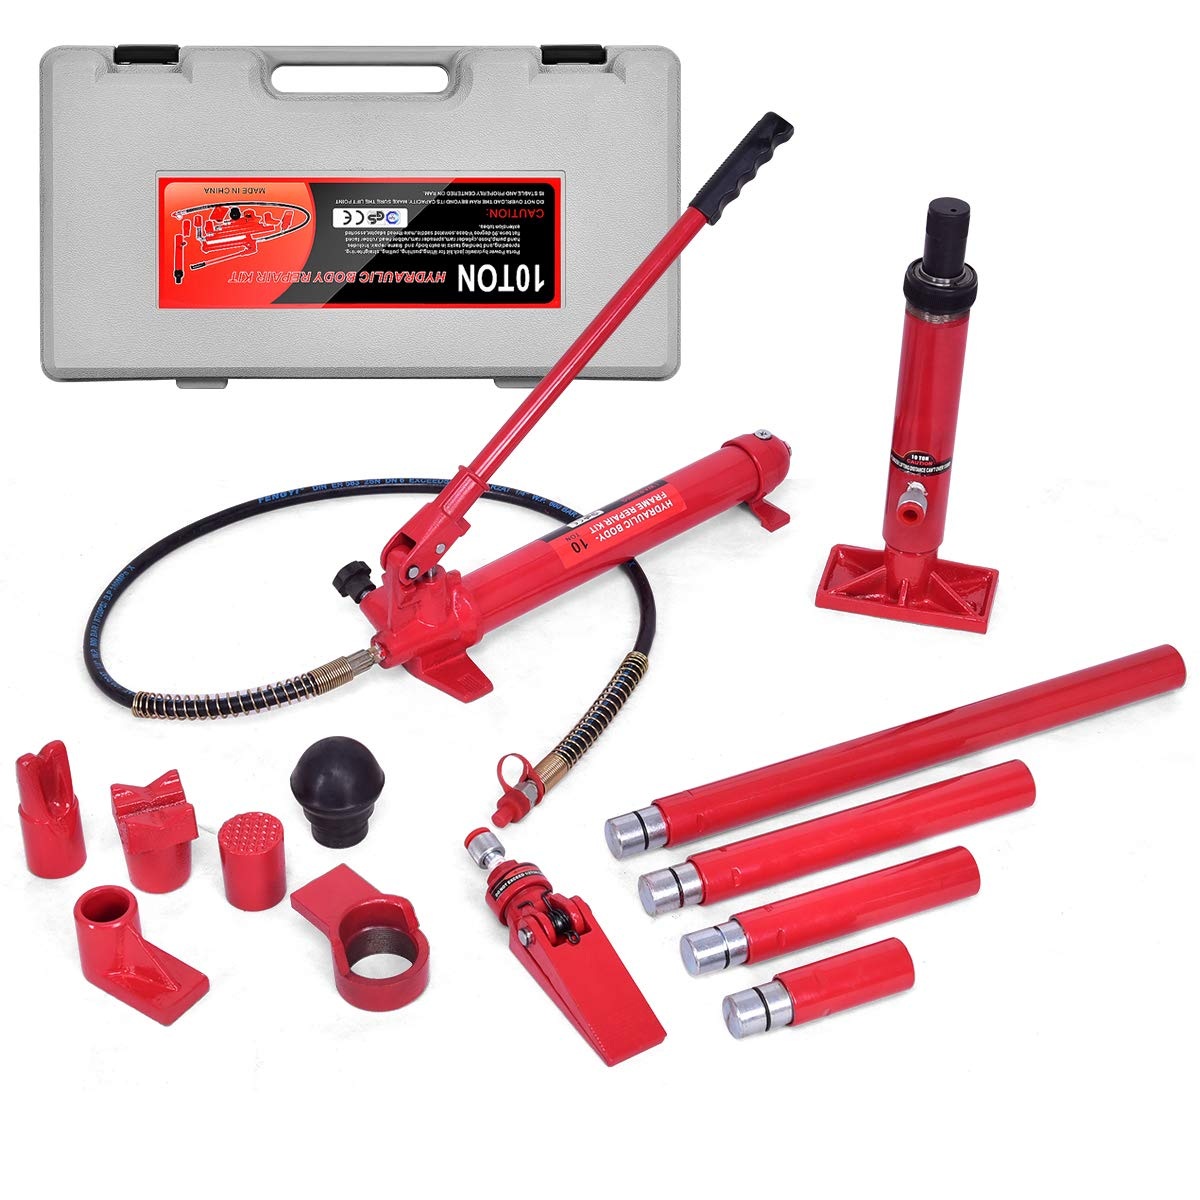 Goplus 10 Ton Porta Power Hydraulic Jack Air Pump Lift Ram, Auto Body Frame Repair Tool Kit with Carrying Case, Perfect for Automotive, Truck, Farm and Heavy Equipment Repair (10 Ton) by Goplus